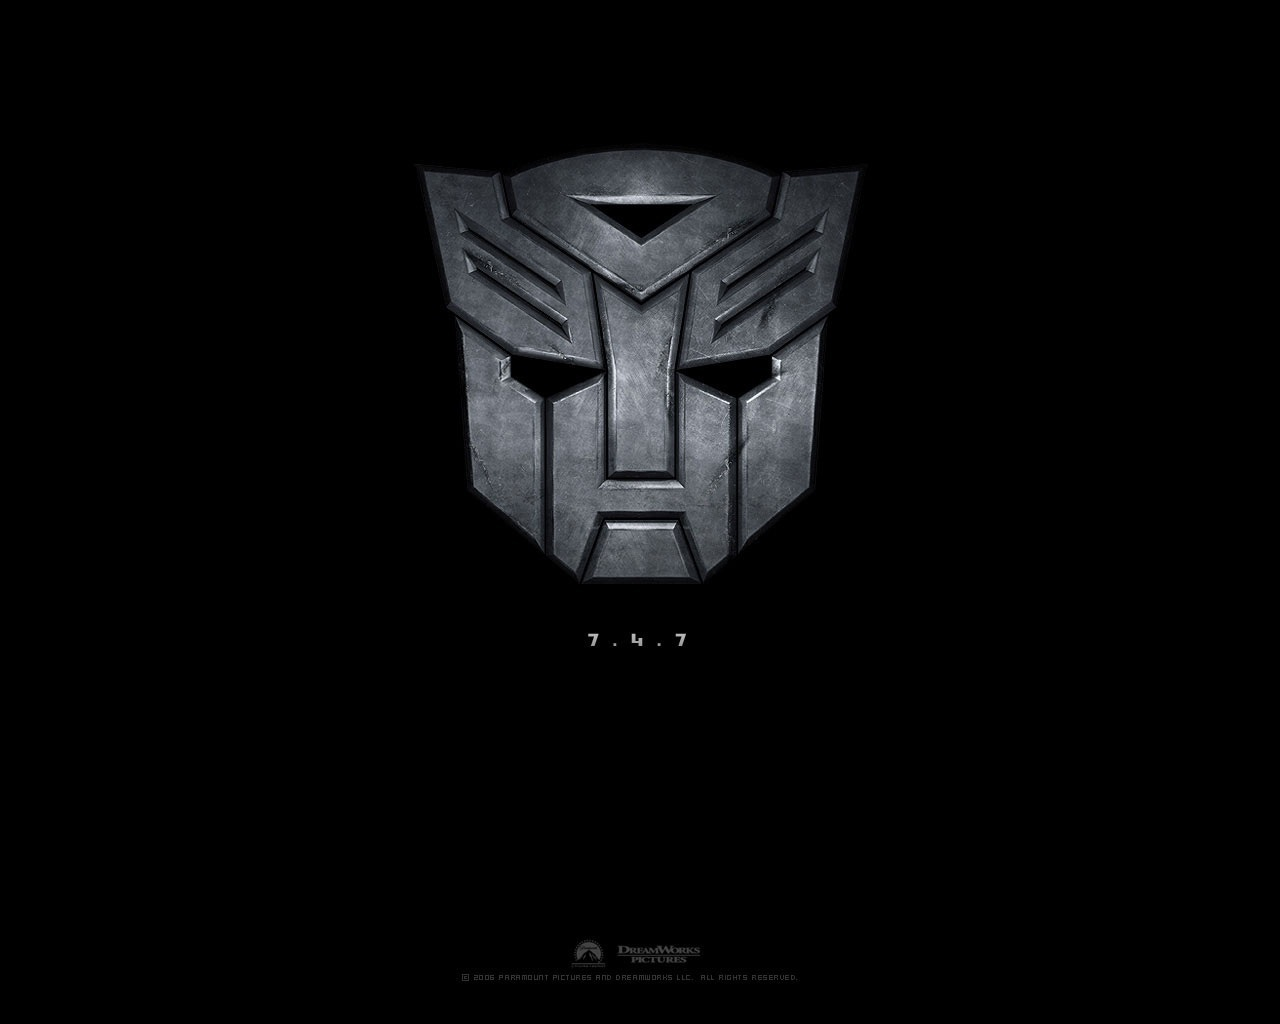 Transformers 1st Gen Images Wallpaper HD And Background Photos